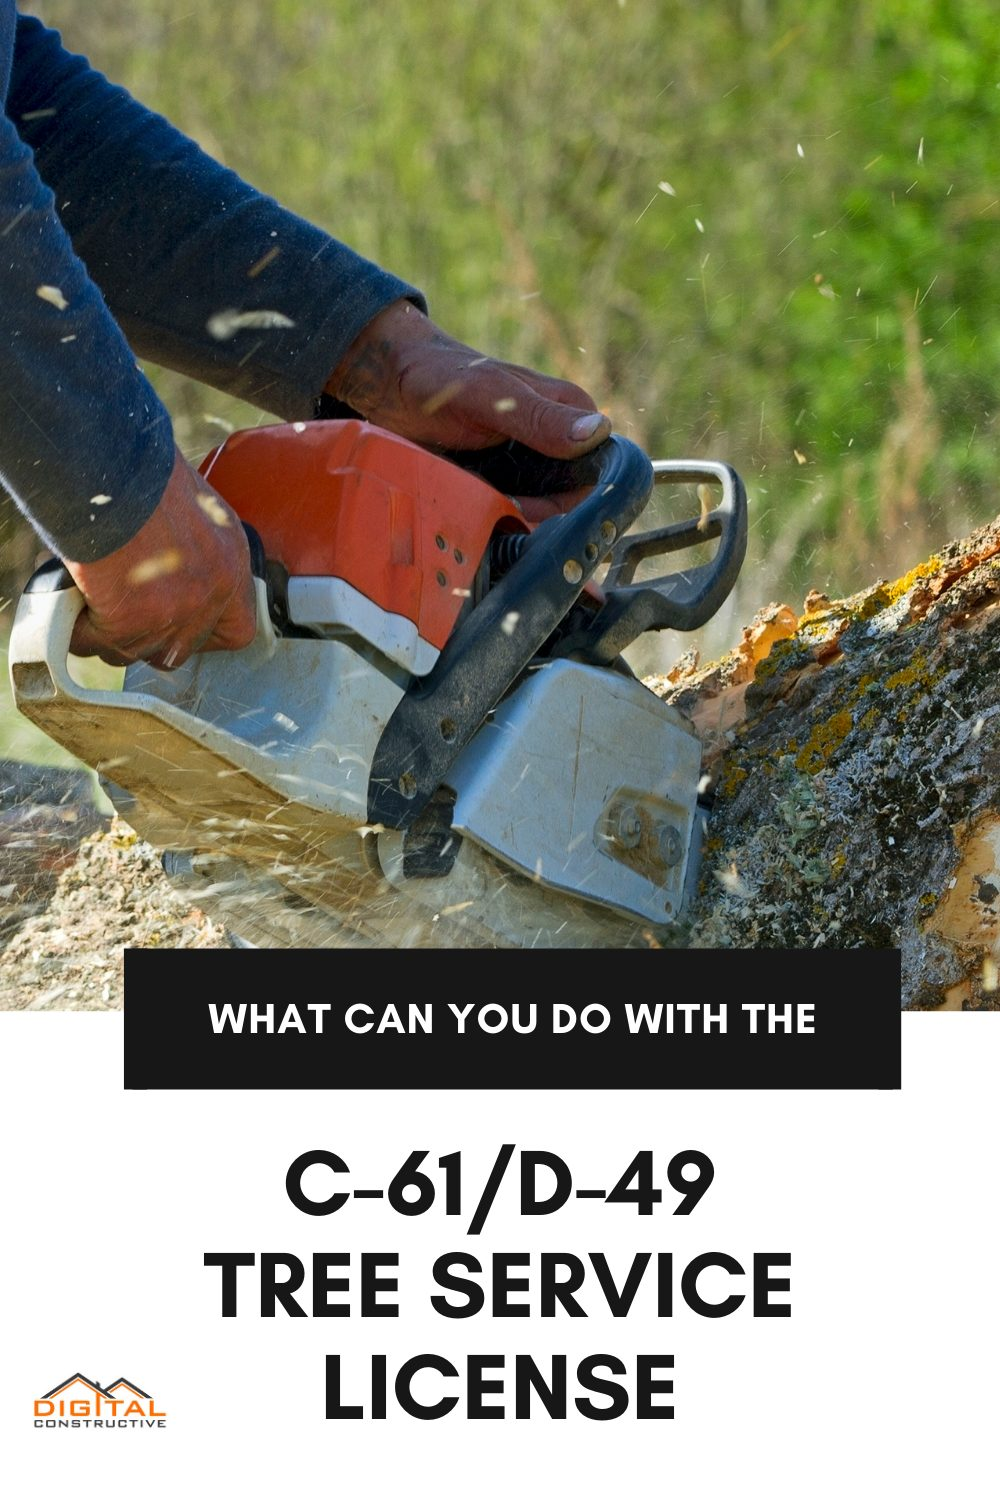 what can you do with a C-61/D-49 tree service contractor license in California